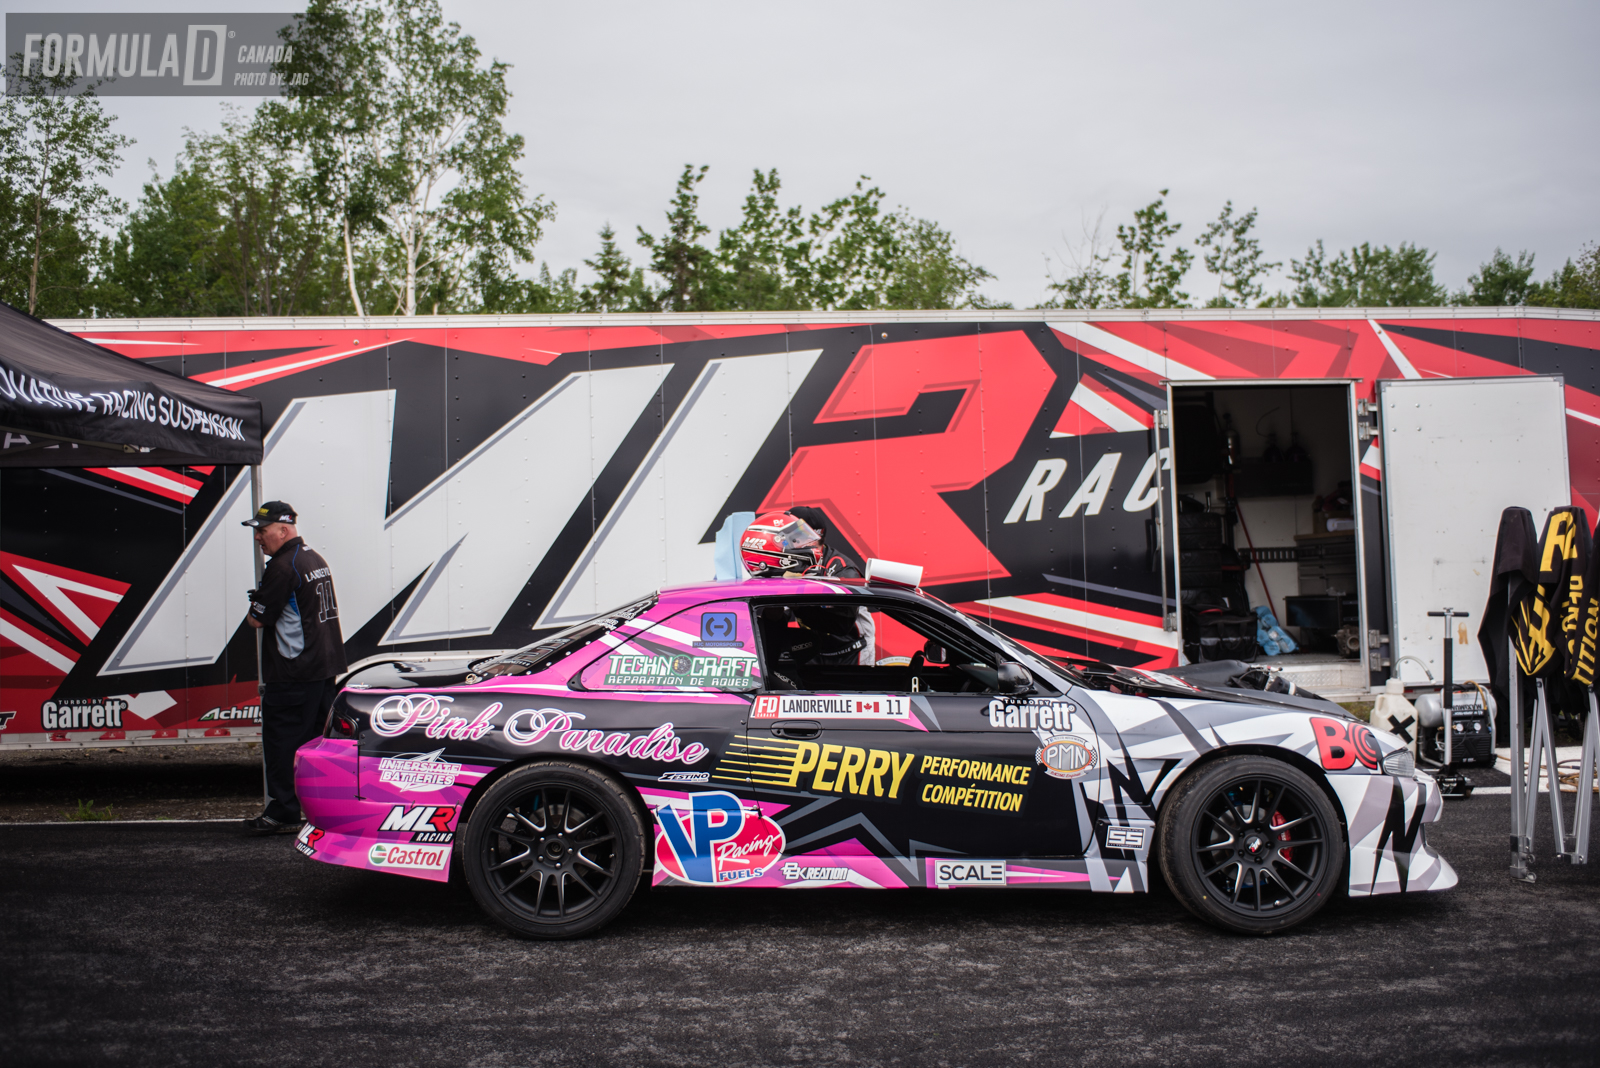 For this weekend Marc was using his back up car which is a V8 powered S14. His 2JZ car and the one he won his Formula D Pro 2 Championship with was not ready in time for this event as it was getting battle ready for the upcoming Formula D USA event at Autodrome St-Eustache.